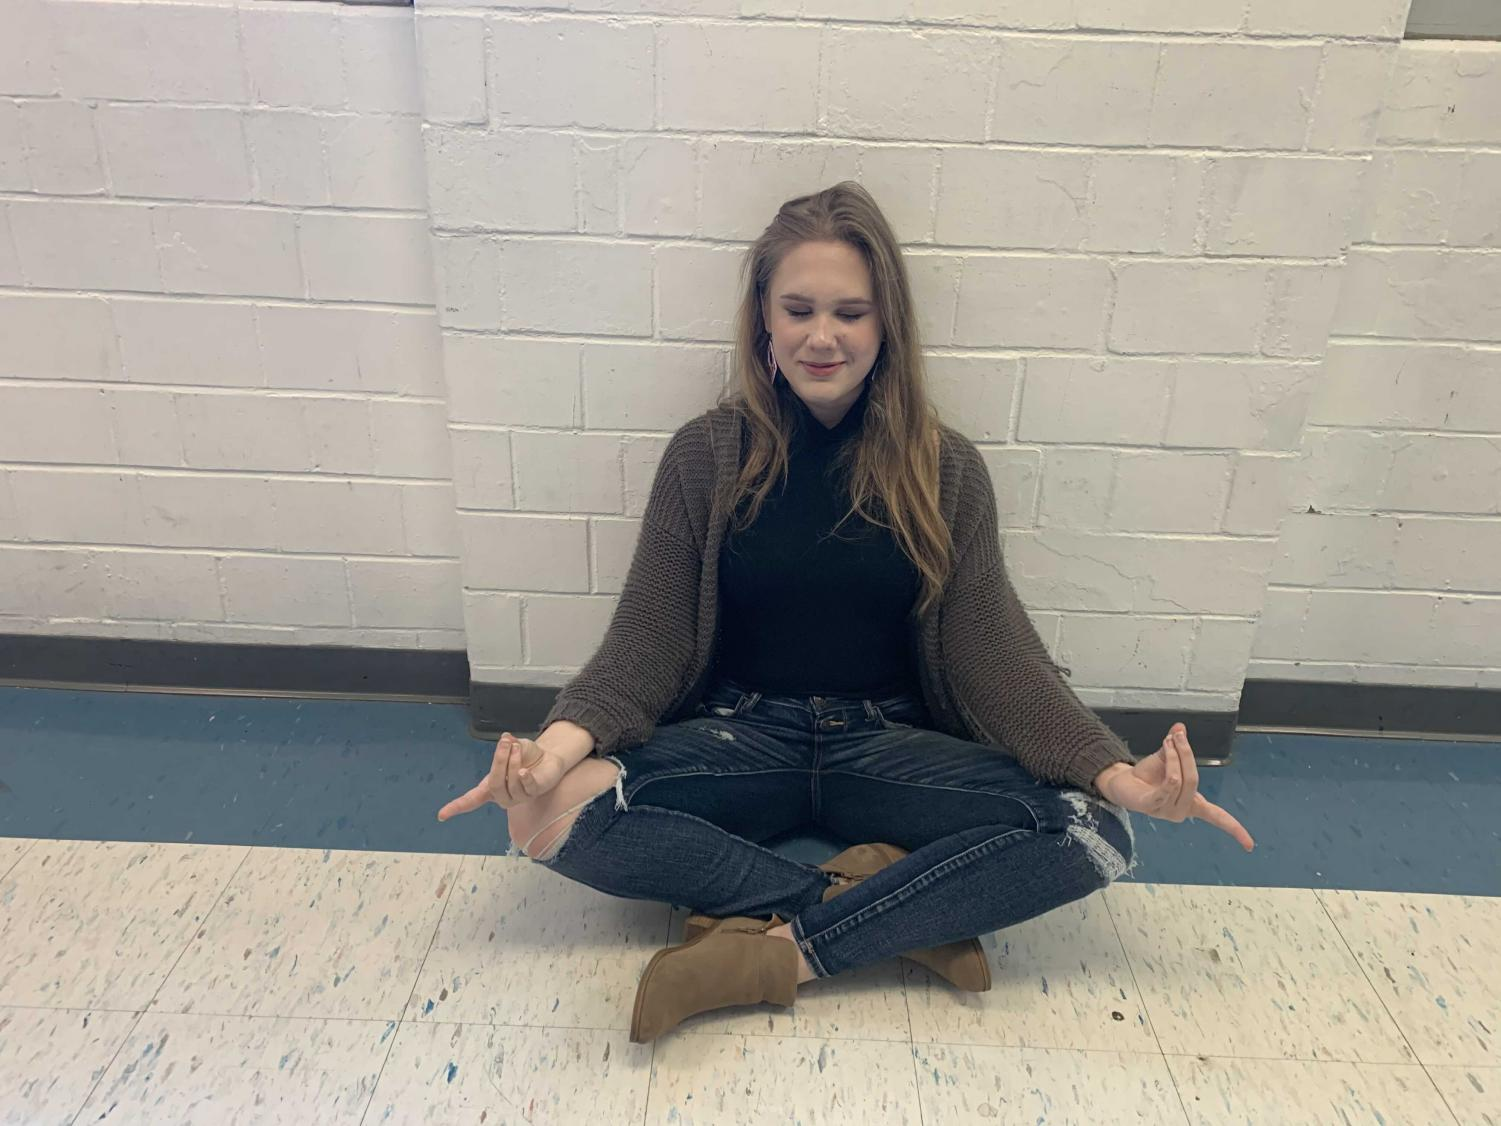 Student Emily Wrede participating in the mindful minute.